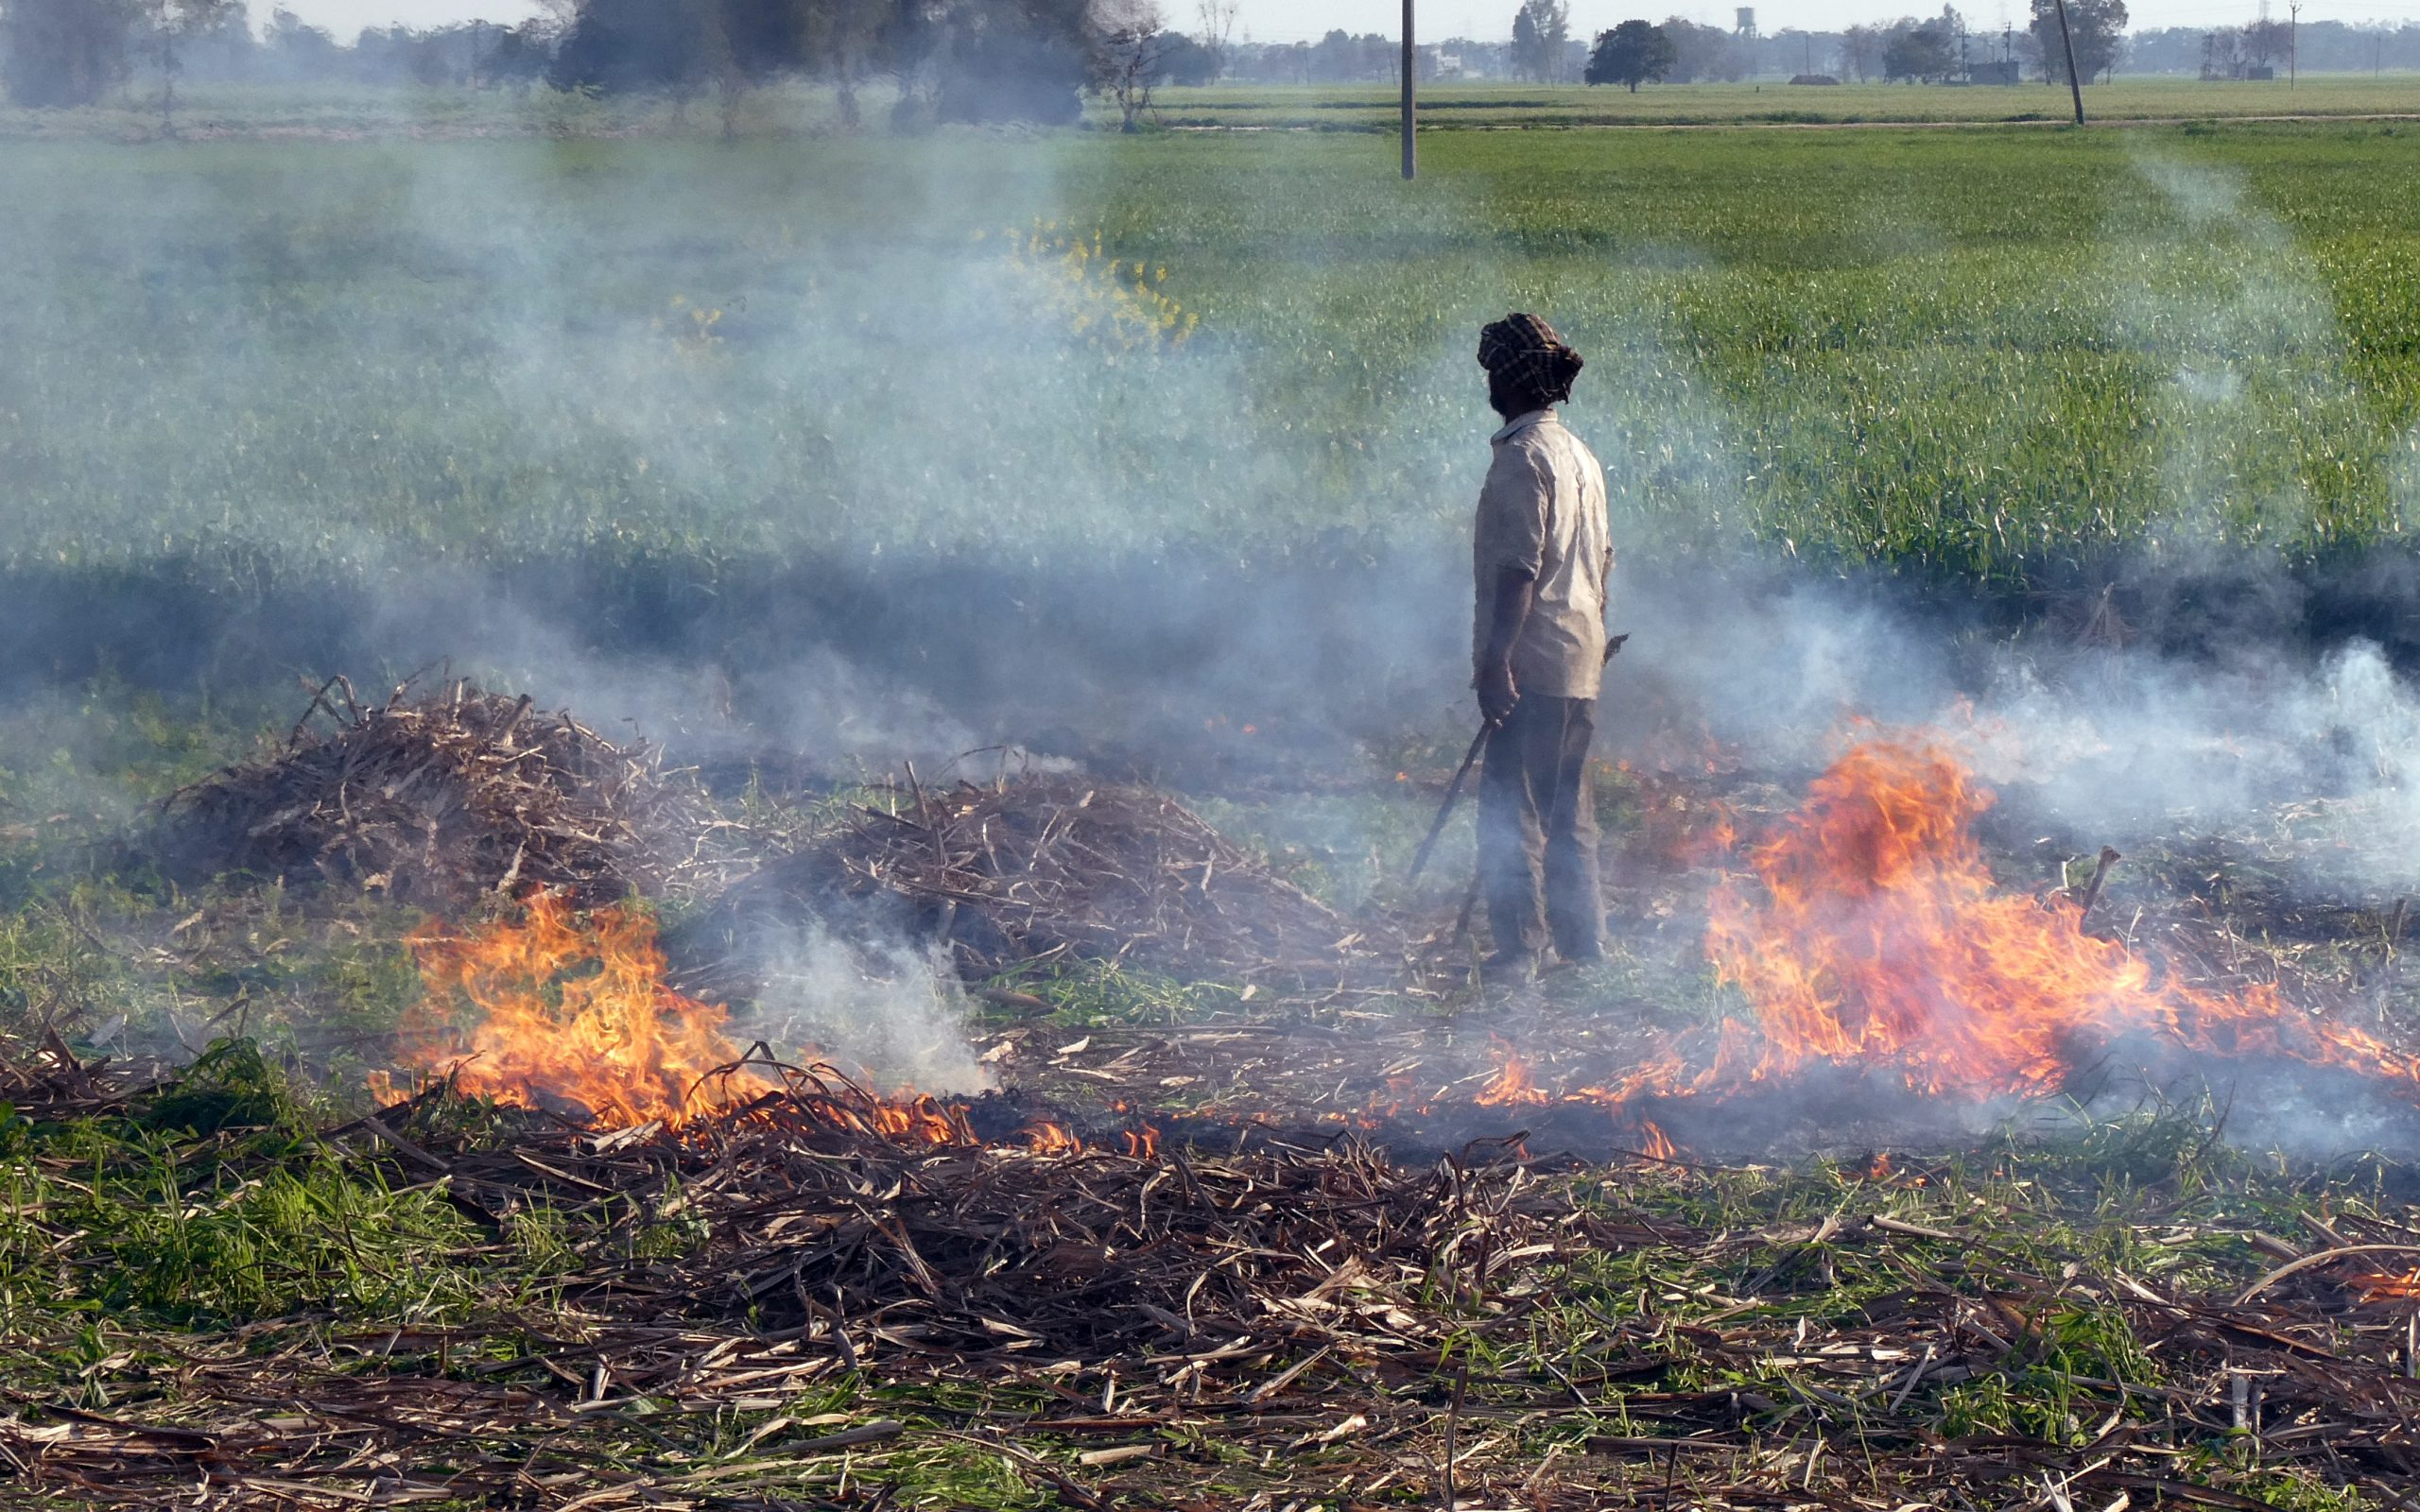 Determining the role of crop residue burning in post-monsoon air quality degradation across Northern India